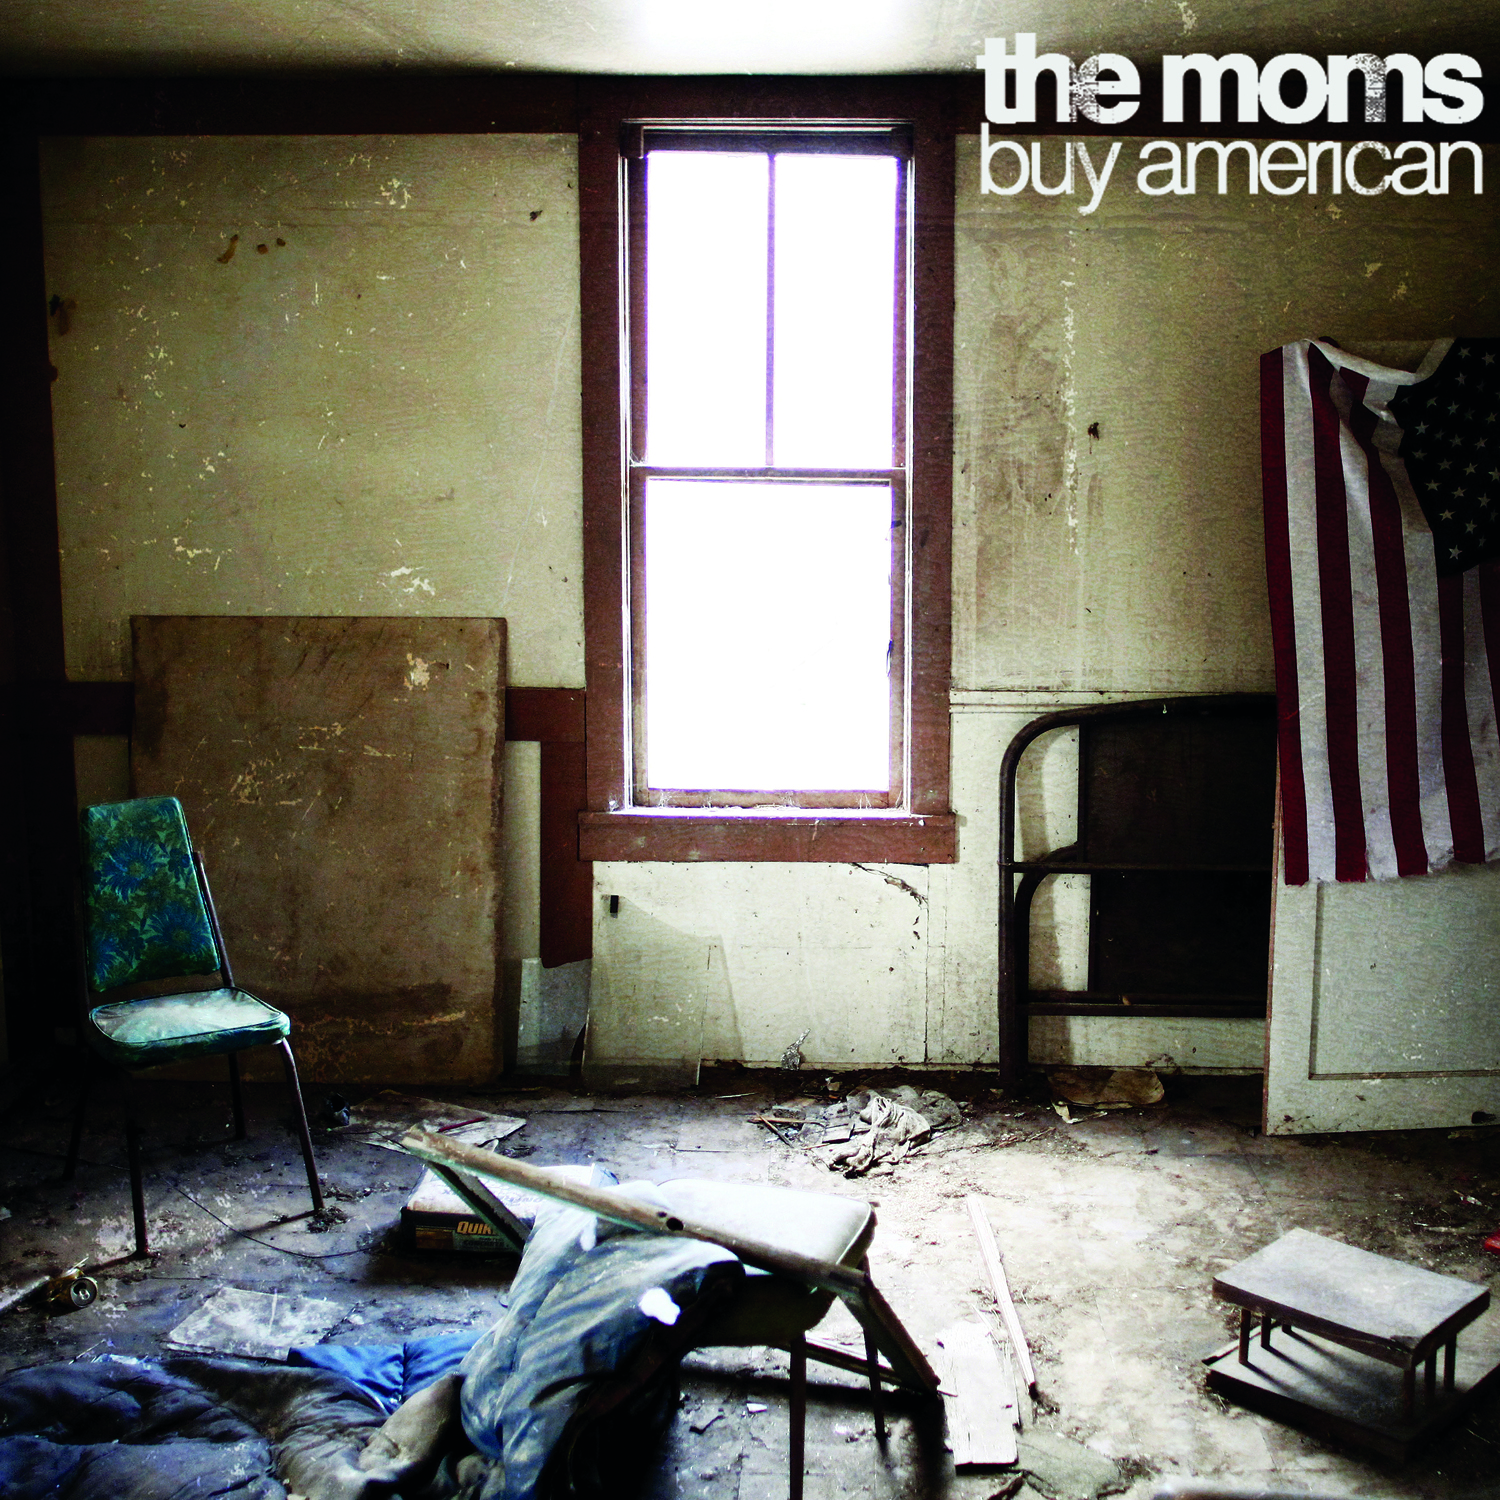 The Moms - Buy American